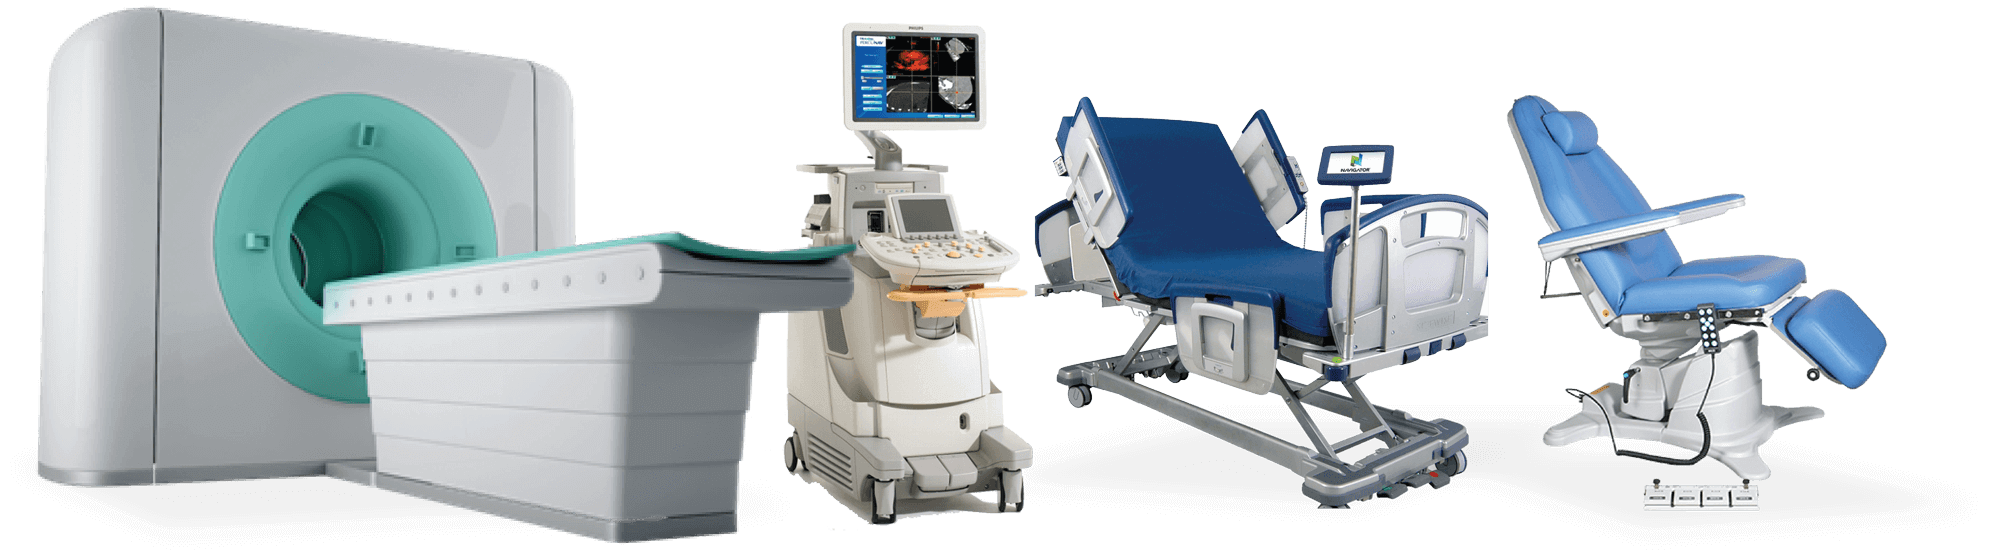 Certified Medical Equipments TGOHN Hollendale, FL